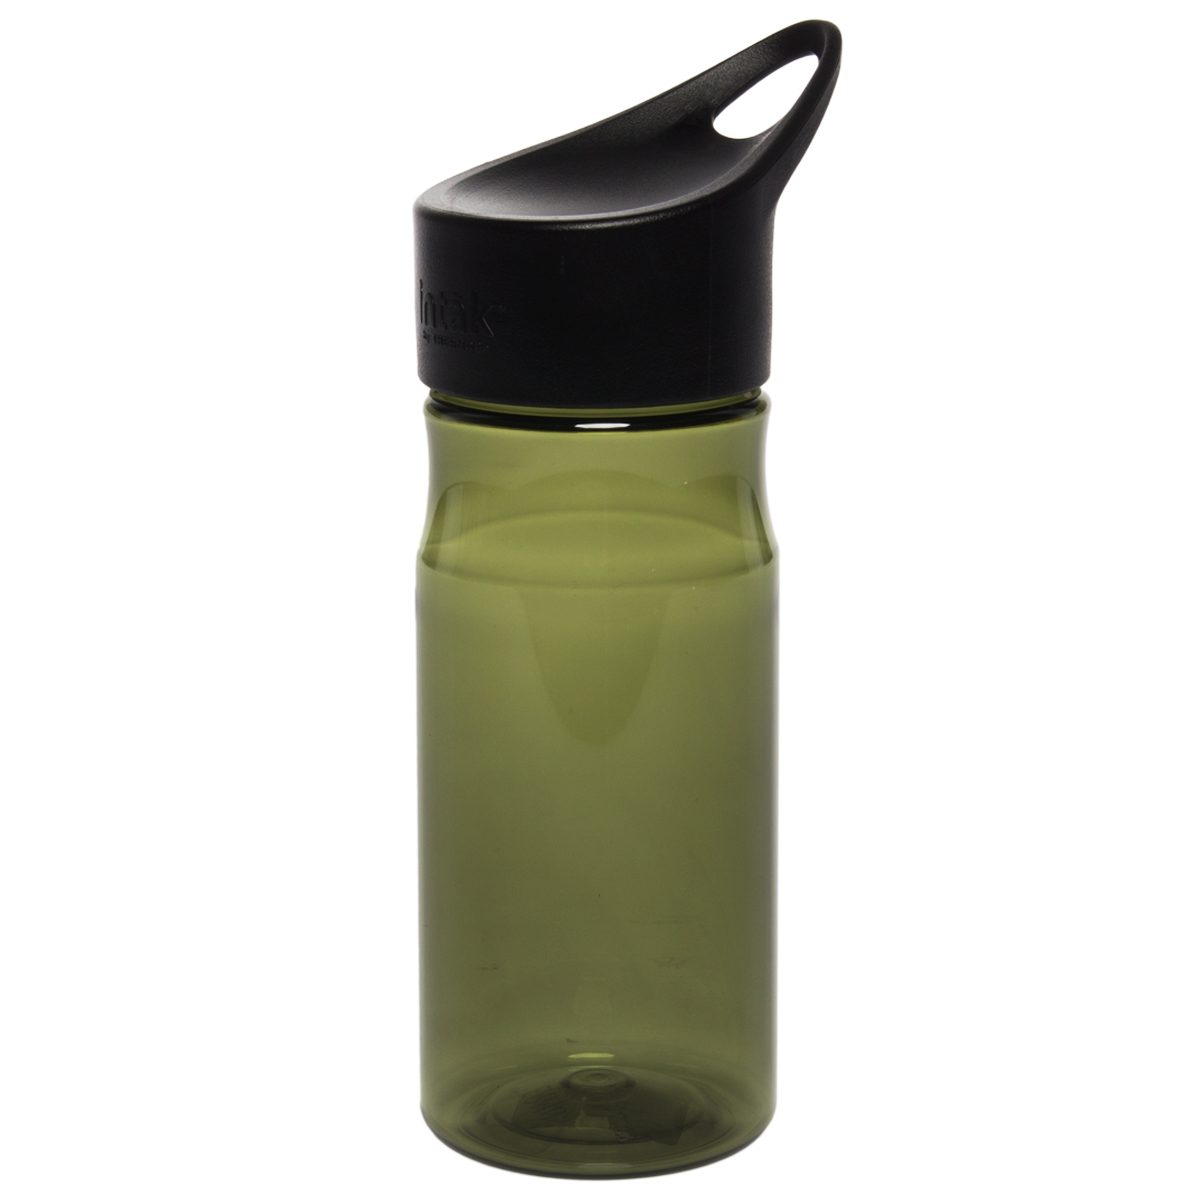 2pk-Thermos-Intak-18oz-Portable-Plastic-Hydration-Water-Bottles-With-Cap-Handle thumbnail 9